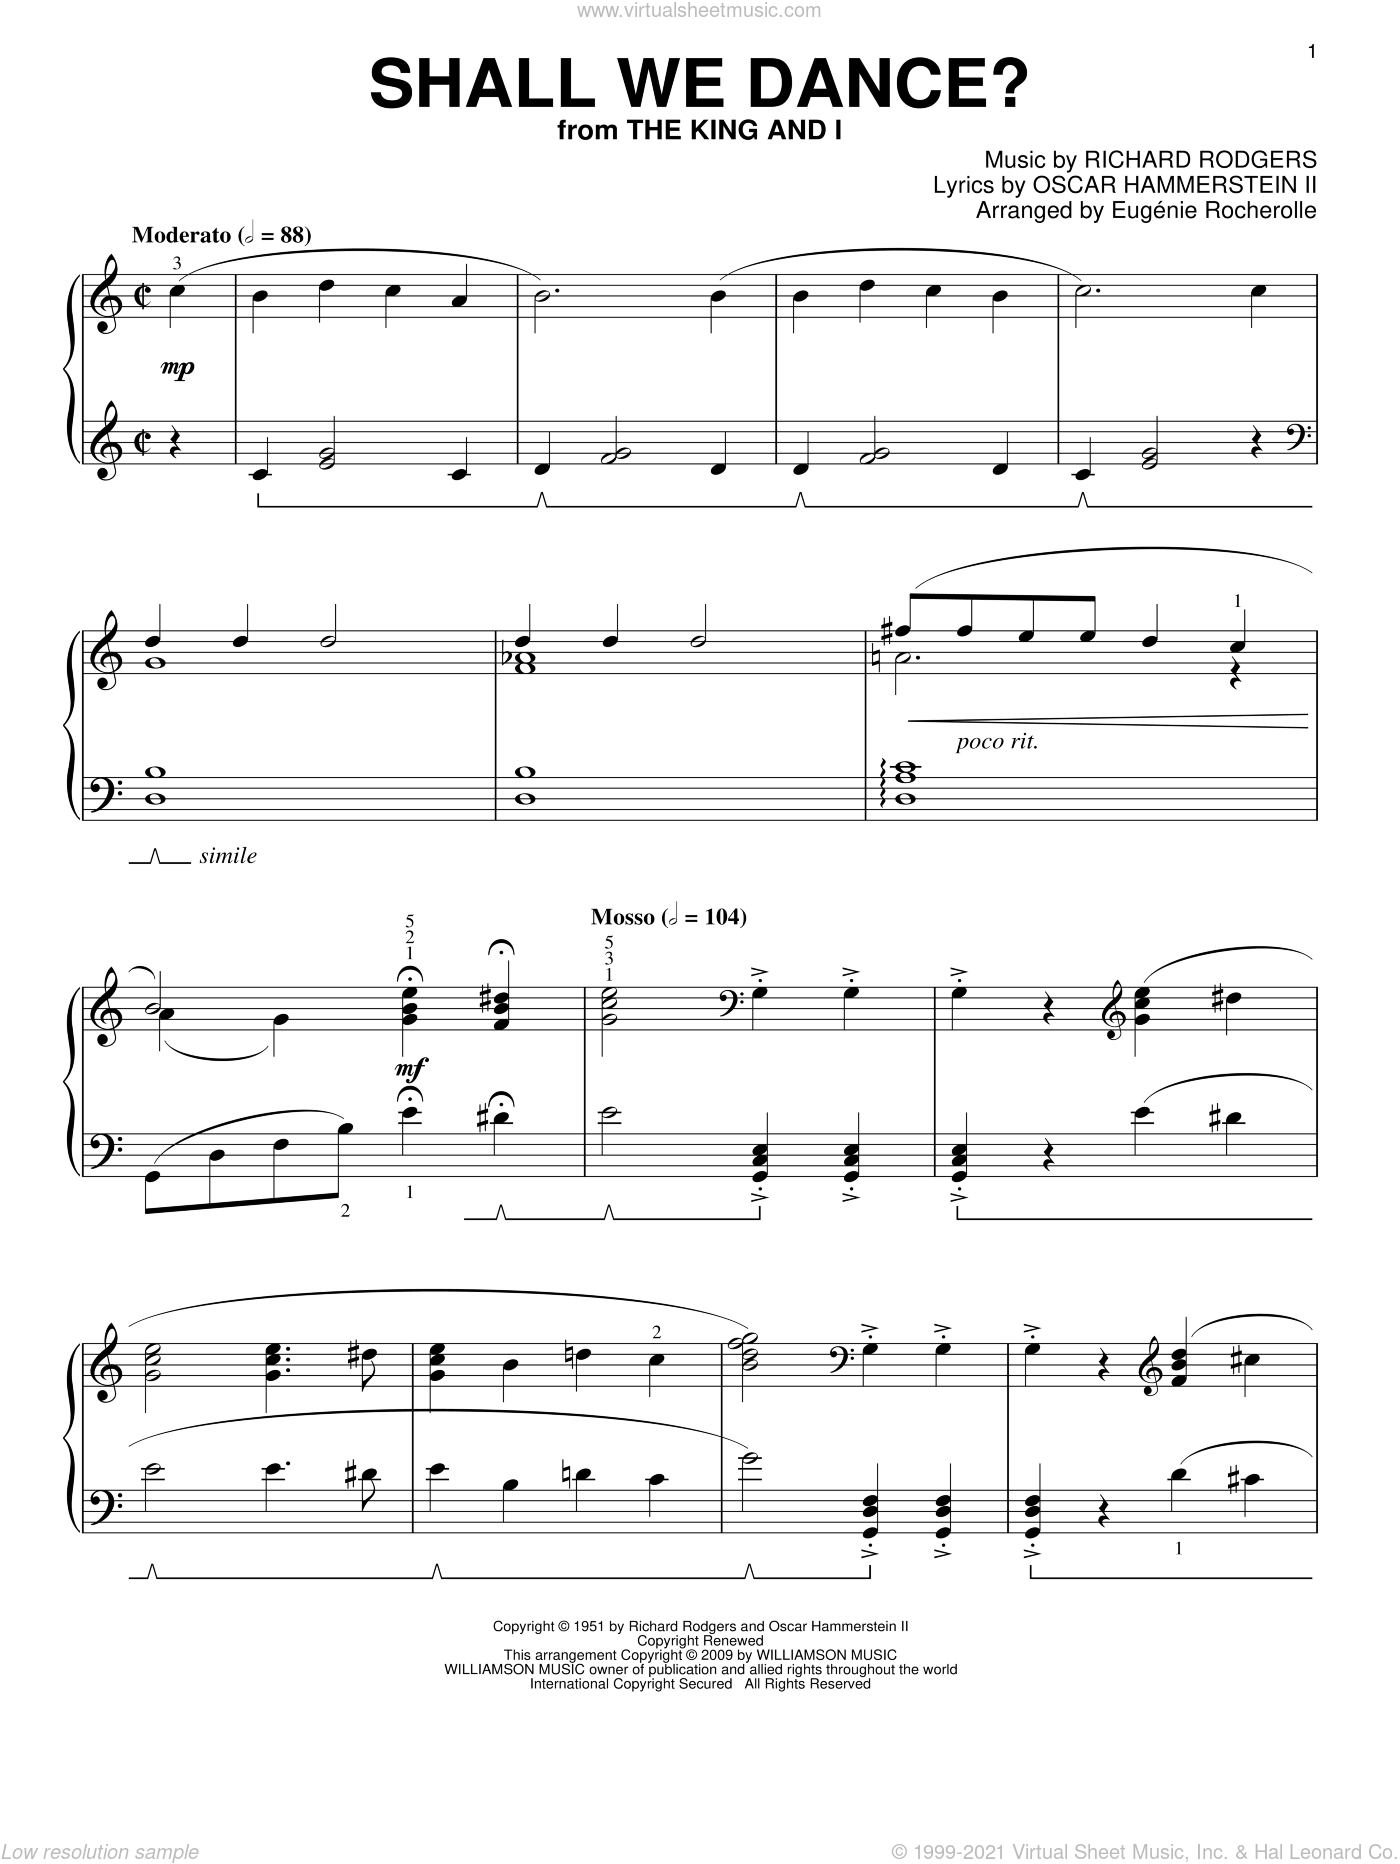 Shall We Dance? sheet music for piano solo by Rodgers & Hammerstein, Eugenie Rocherolle, Oscar II Hammerstein and Richard Rodgers, intermediate. Score Image Preview.